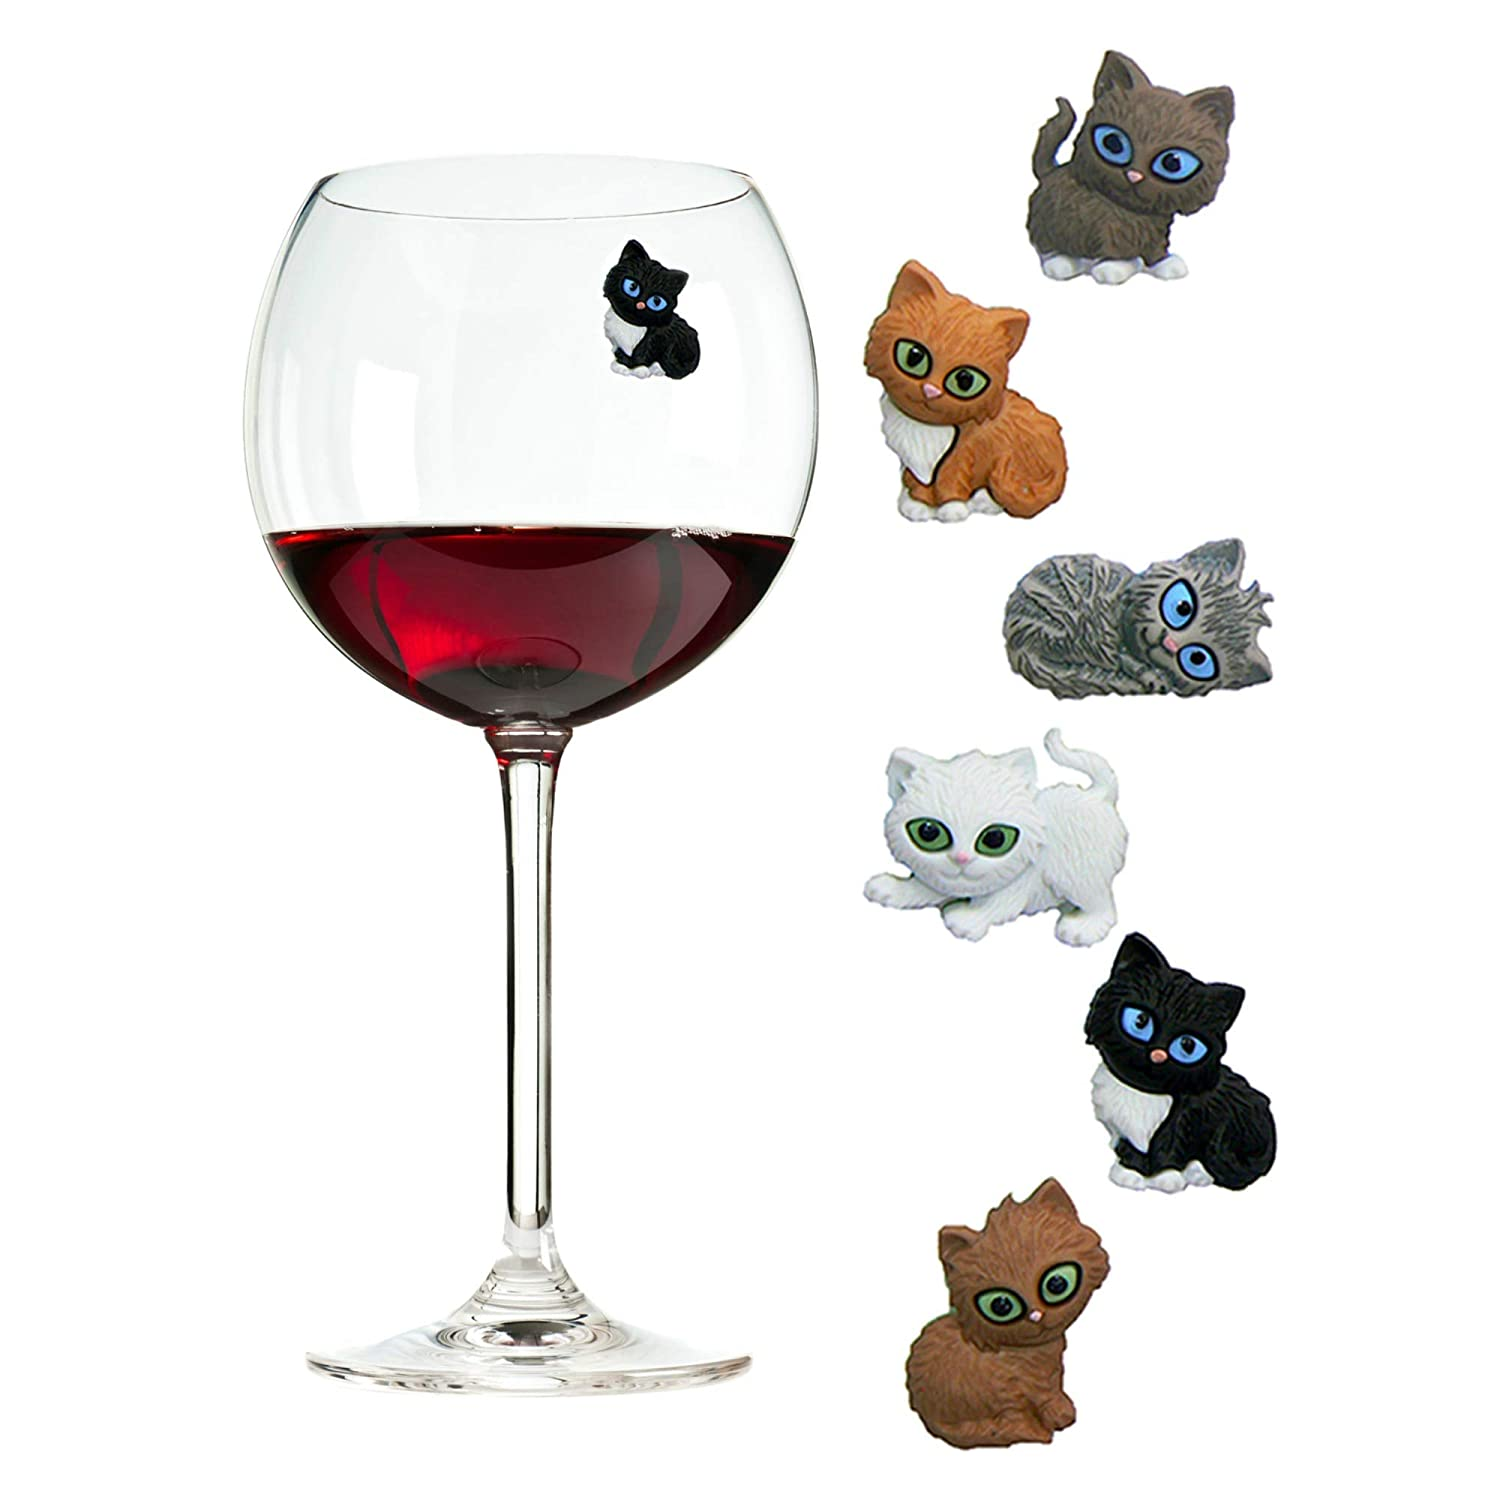 Simply Charmed Cat Wine Charms or Drink Glass Markers - Magnetic - Great Birthday or Hostess Gift for Cat Lovers - Set of 6 Cute Kitty Glass Identifiers cool gifts for cat lover